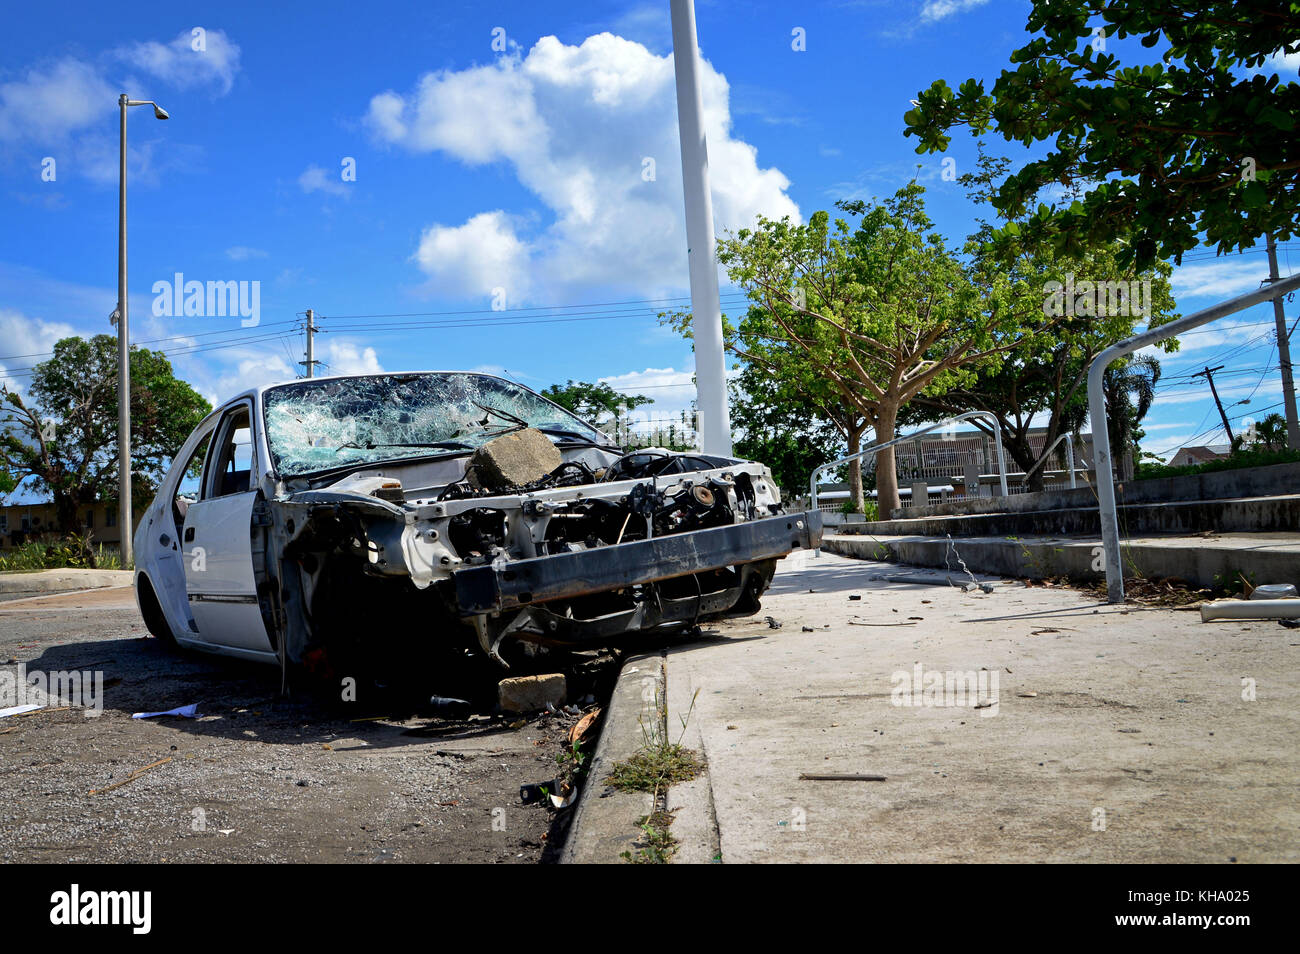 Abandoned vehicles and tattered roads are the new normal in places like Mayagüez, Puerto Rico, Nov. 14, 2017. - Stock Image